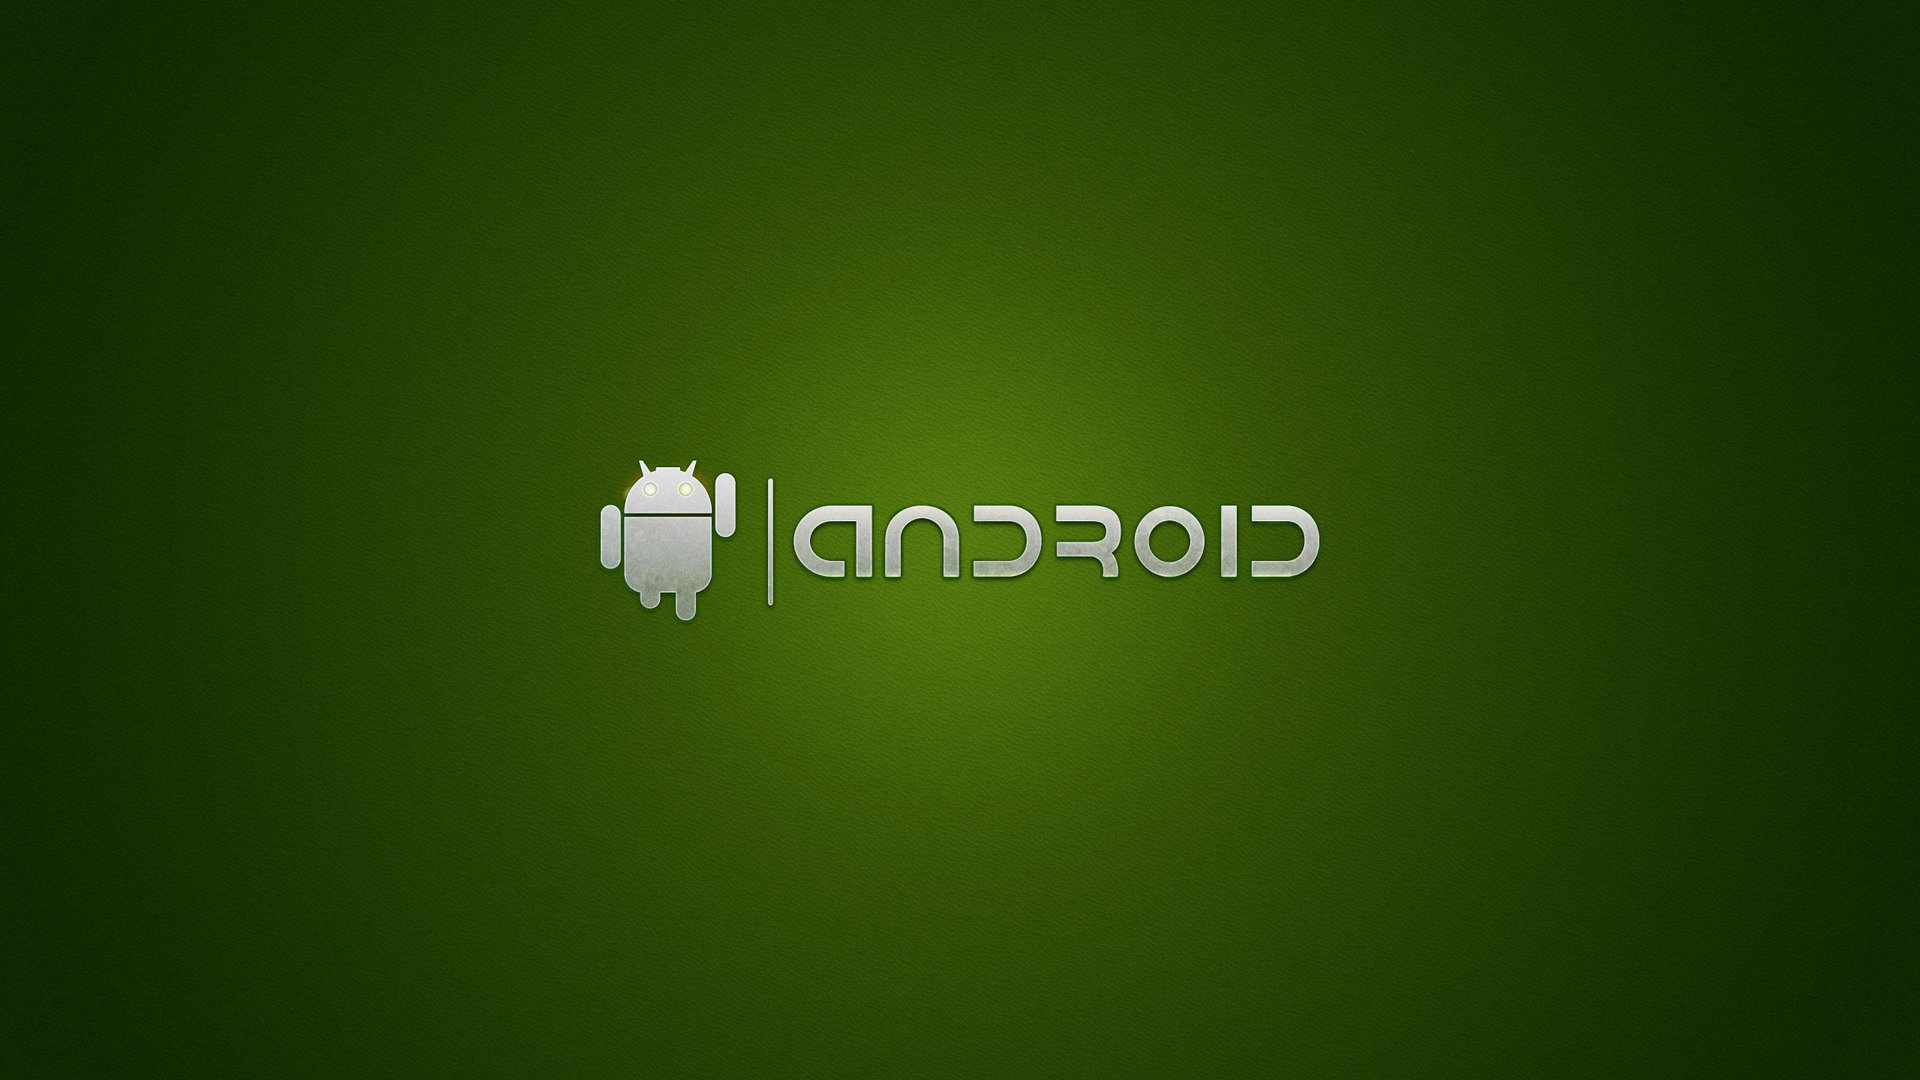 download high quality android wallpapers desktop